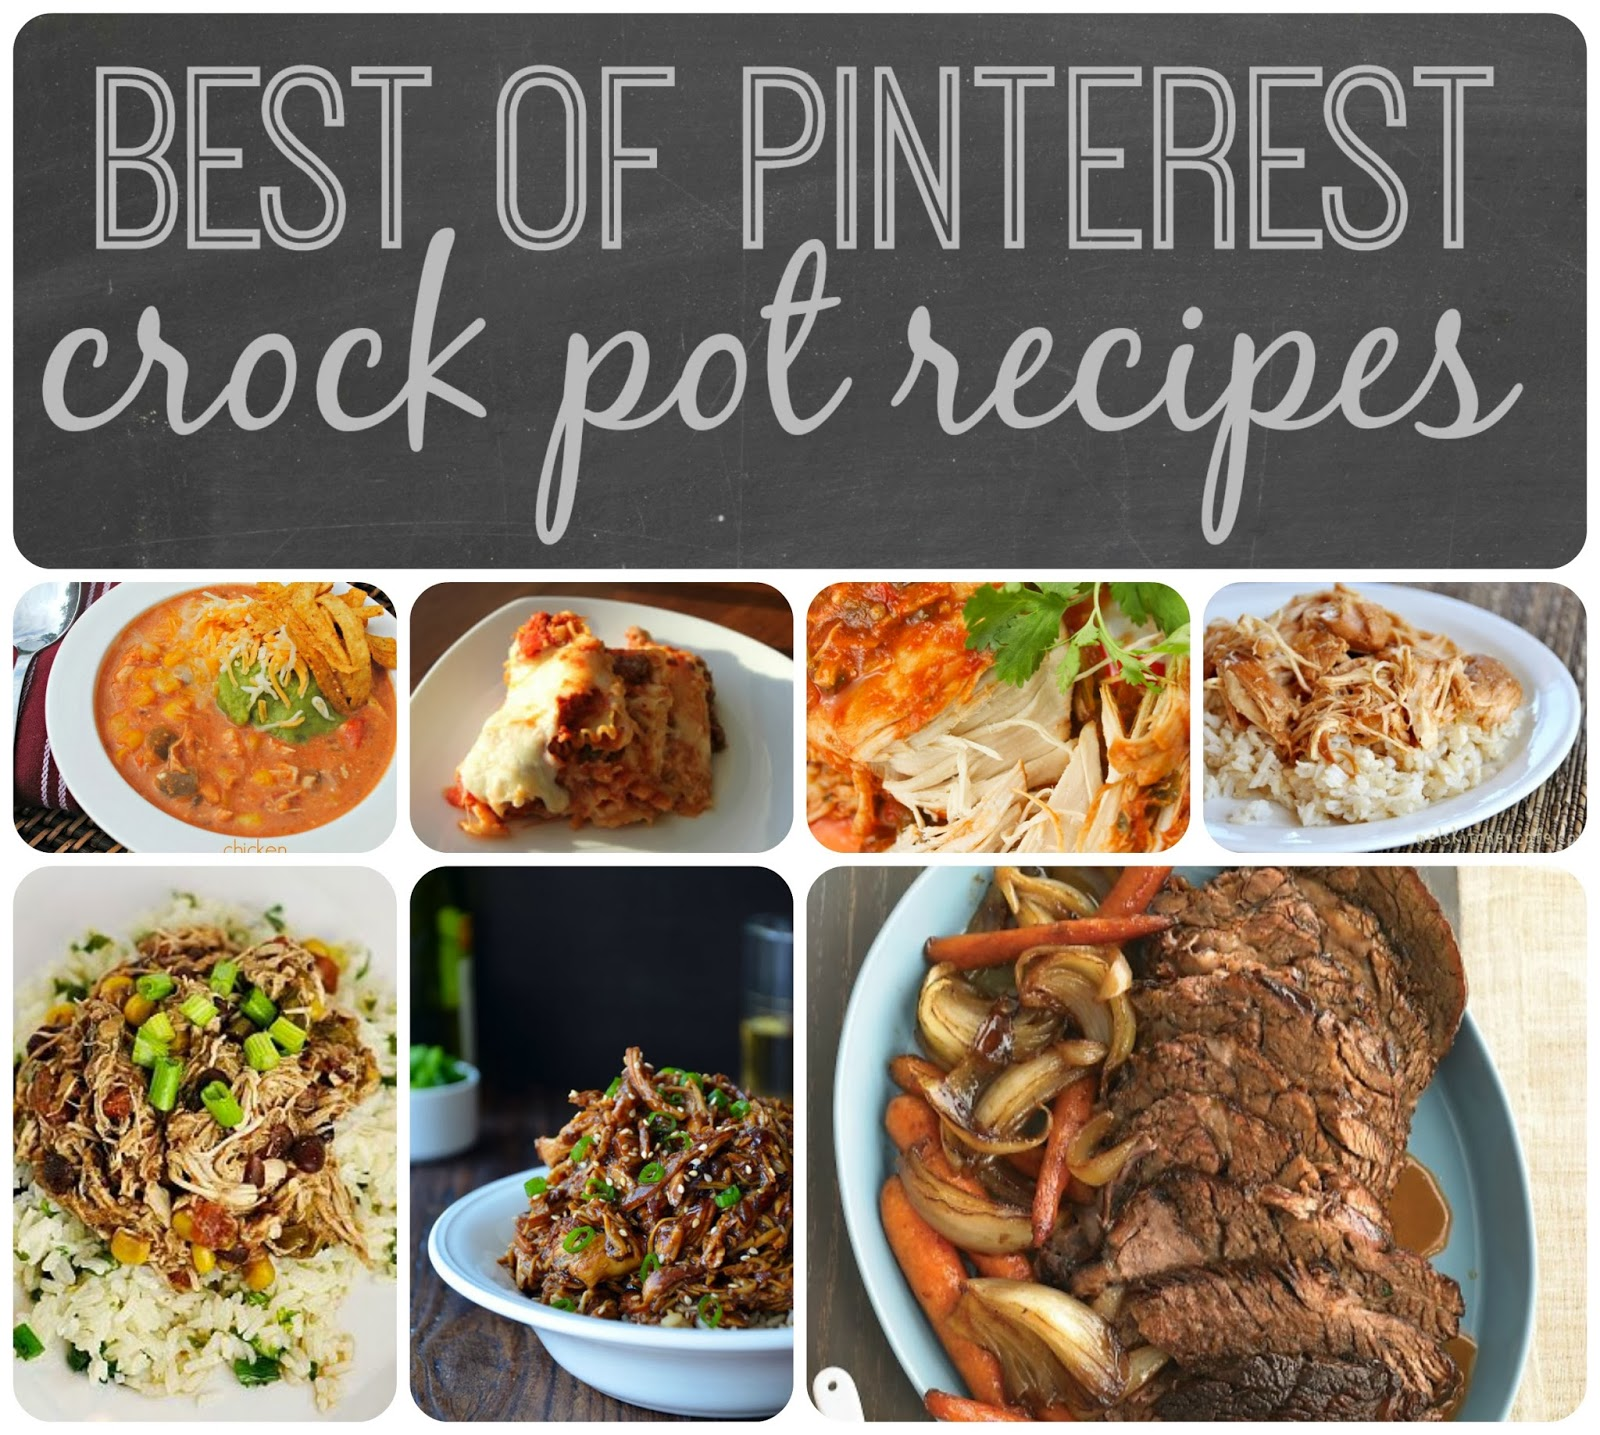 Nap Time Is The New Happy Hour: Best Of Pinterest Crock